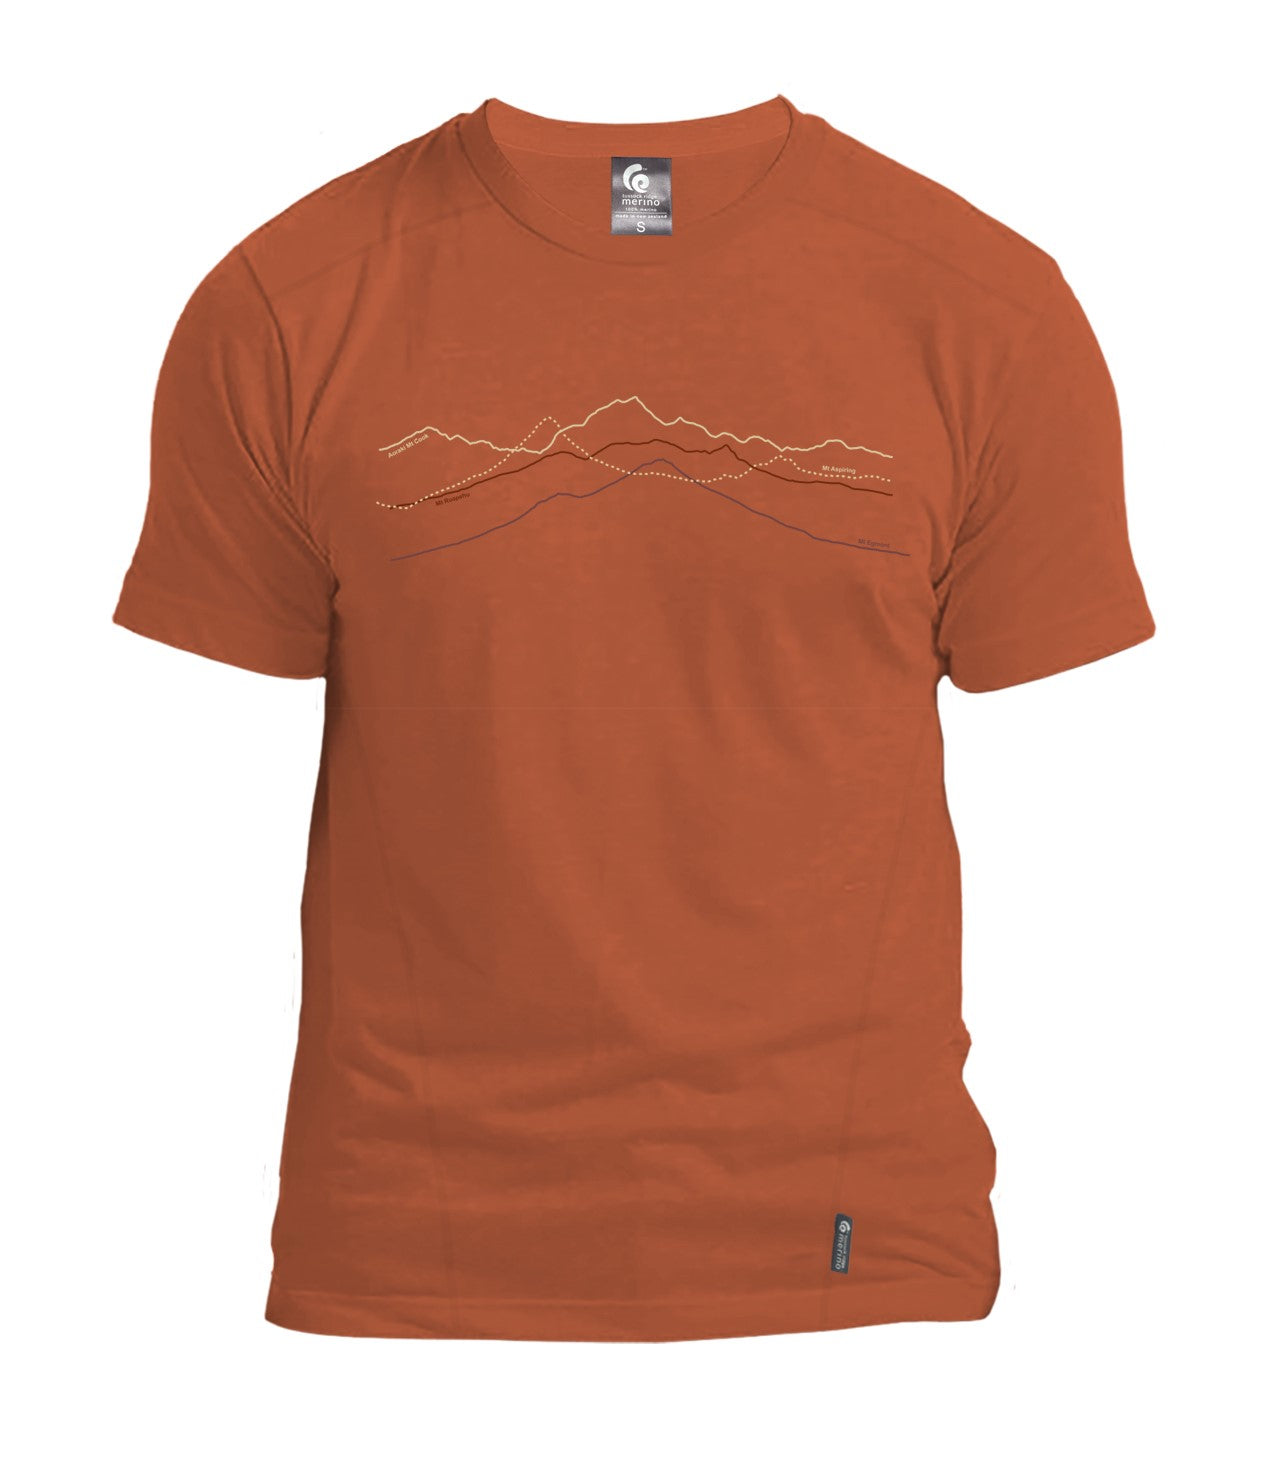 Merino Men's Mountain Peaks Tee. Made in New Zealand